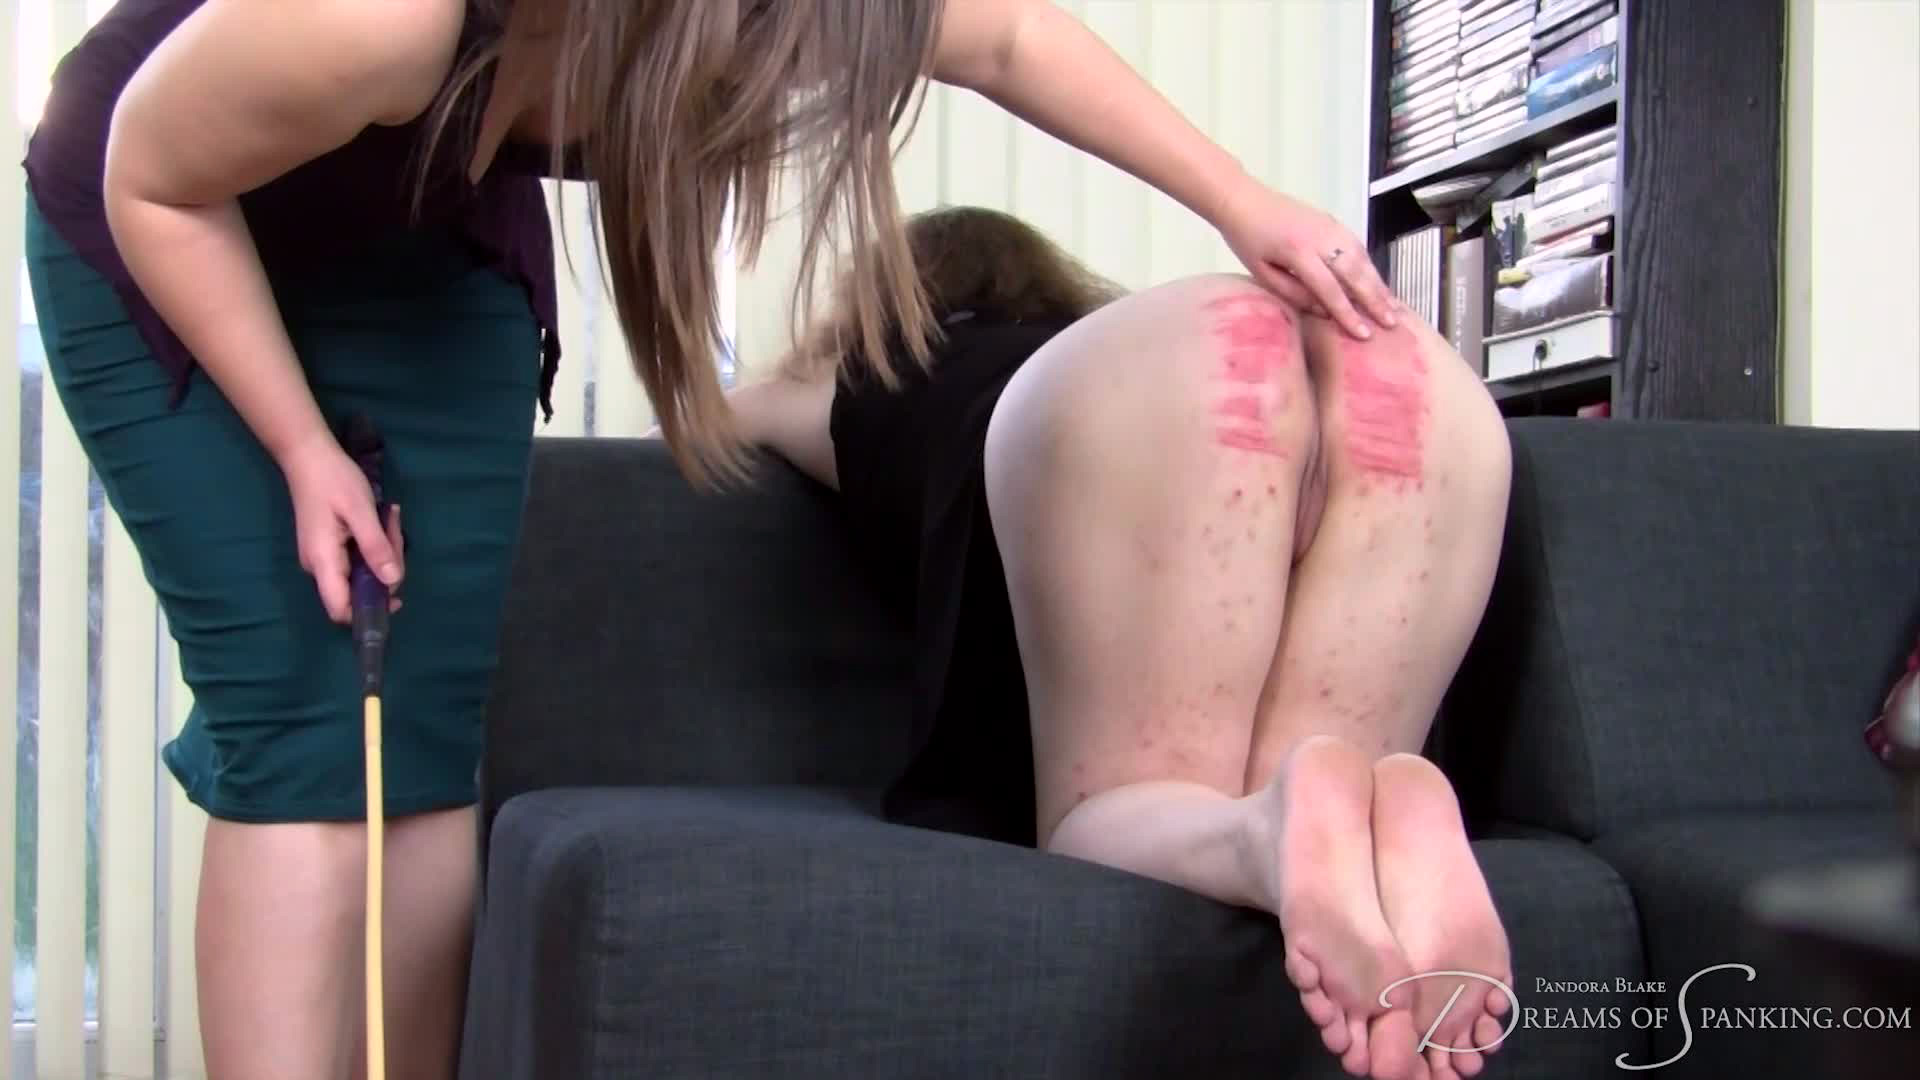 Porn activist Michelle Knight bends over to receive her first ever hard caning at Dreams of Spanking